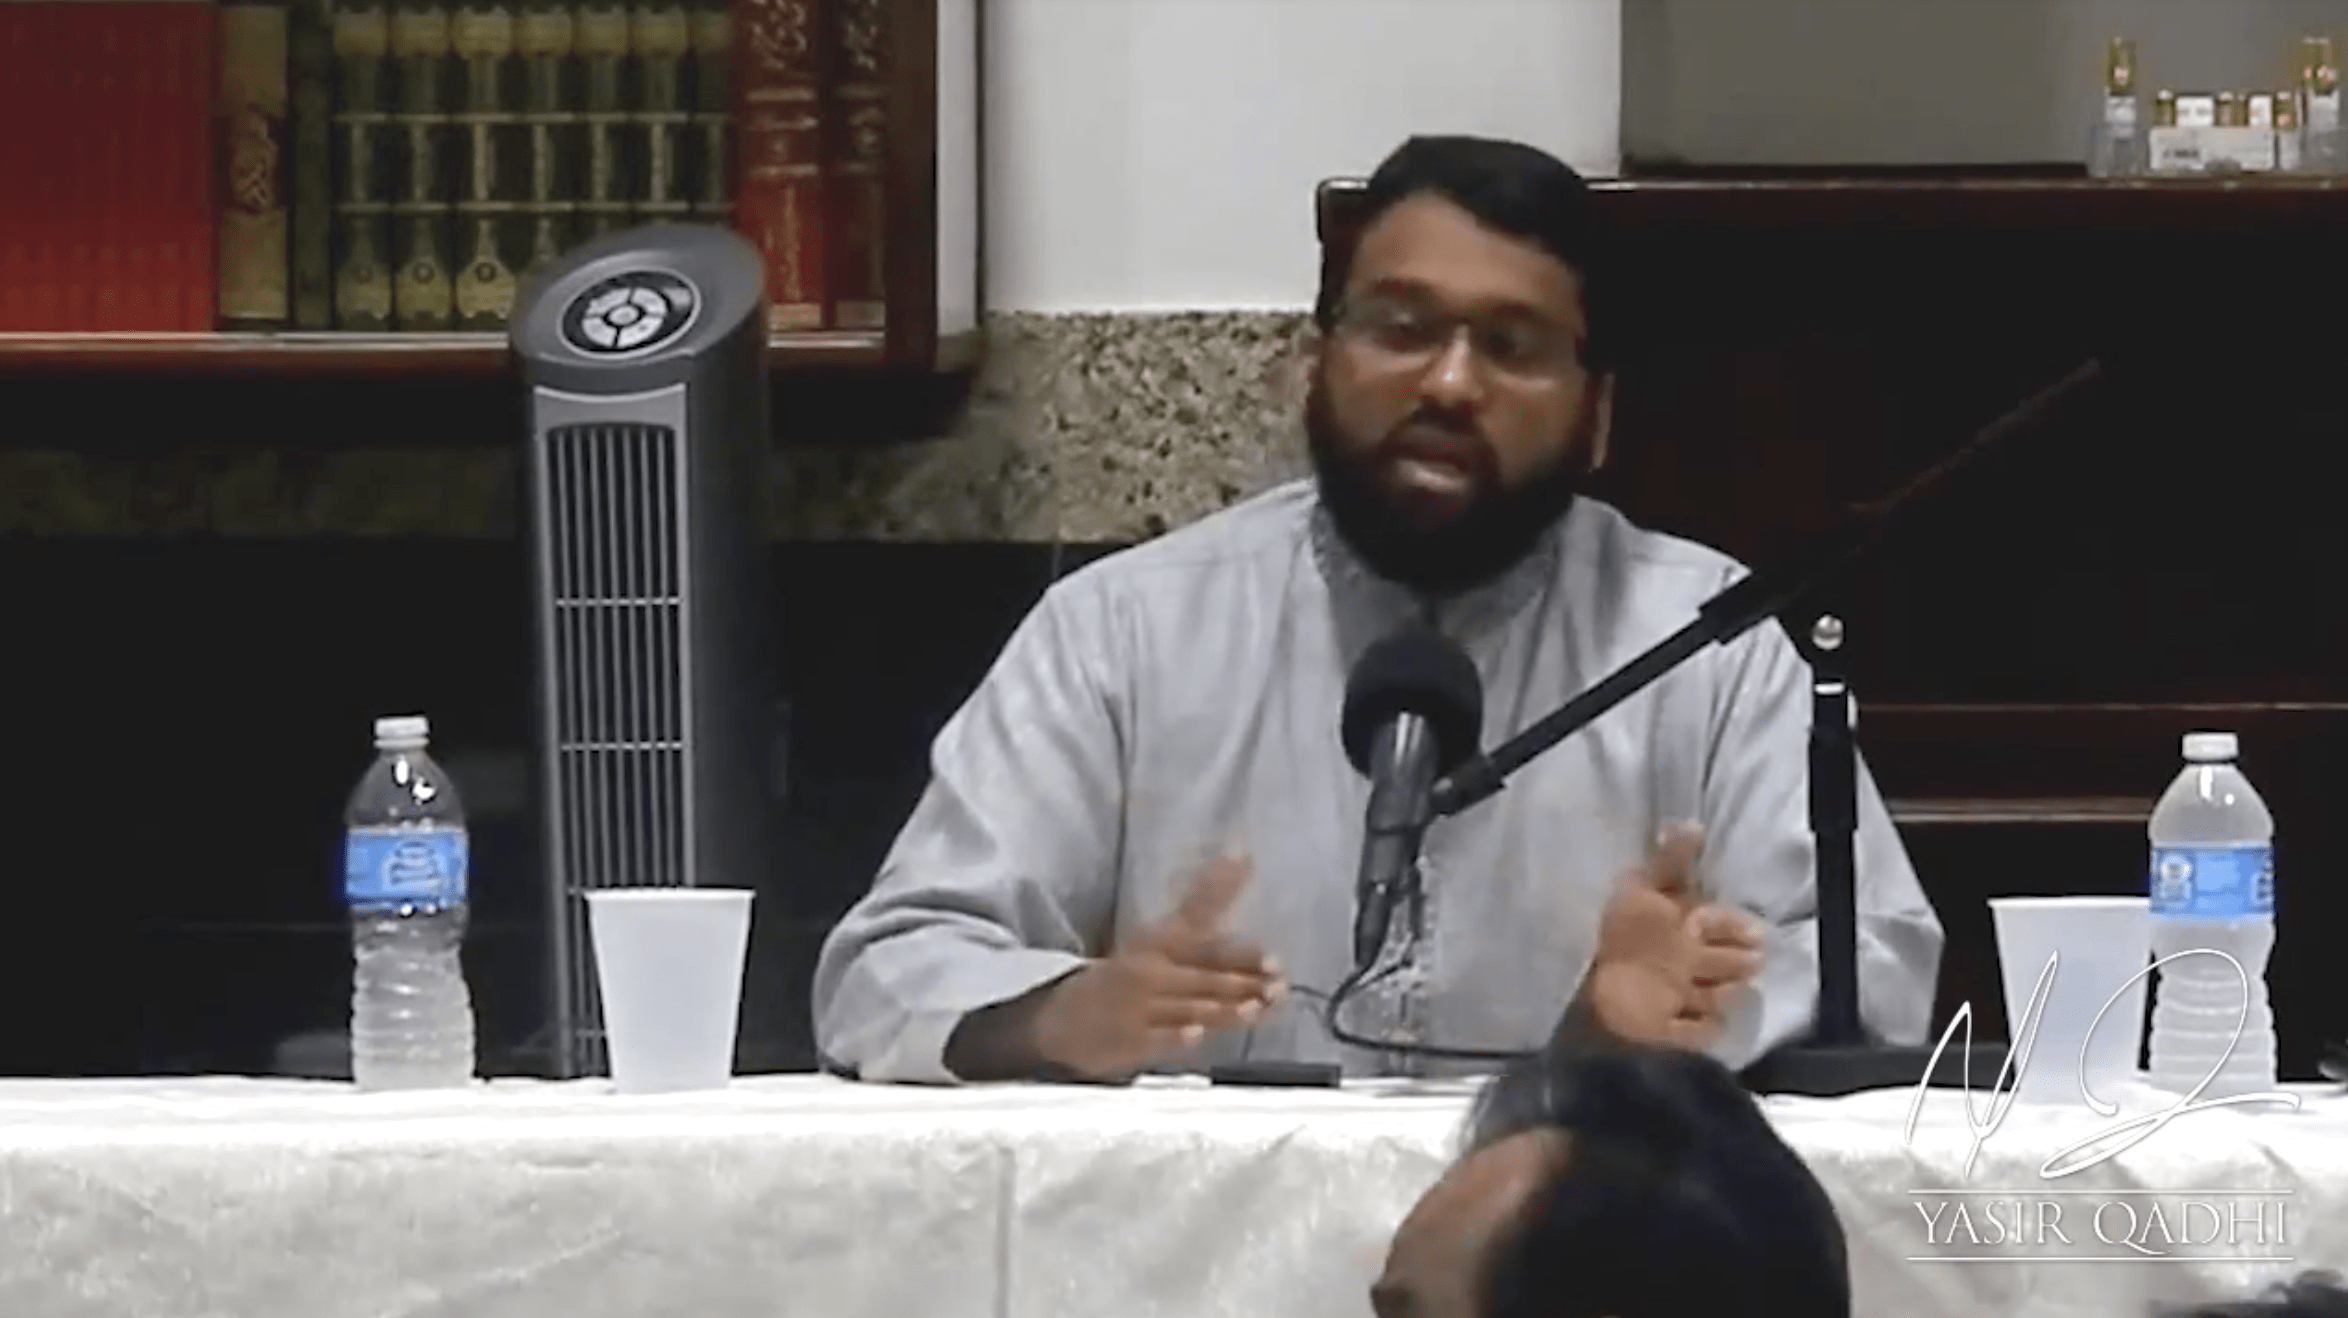 Yasir Qadhi – Lofty Intentions: Having Noble Visions and Goals